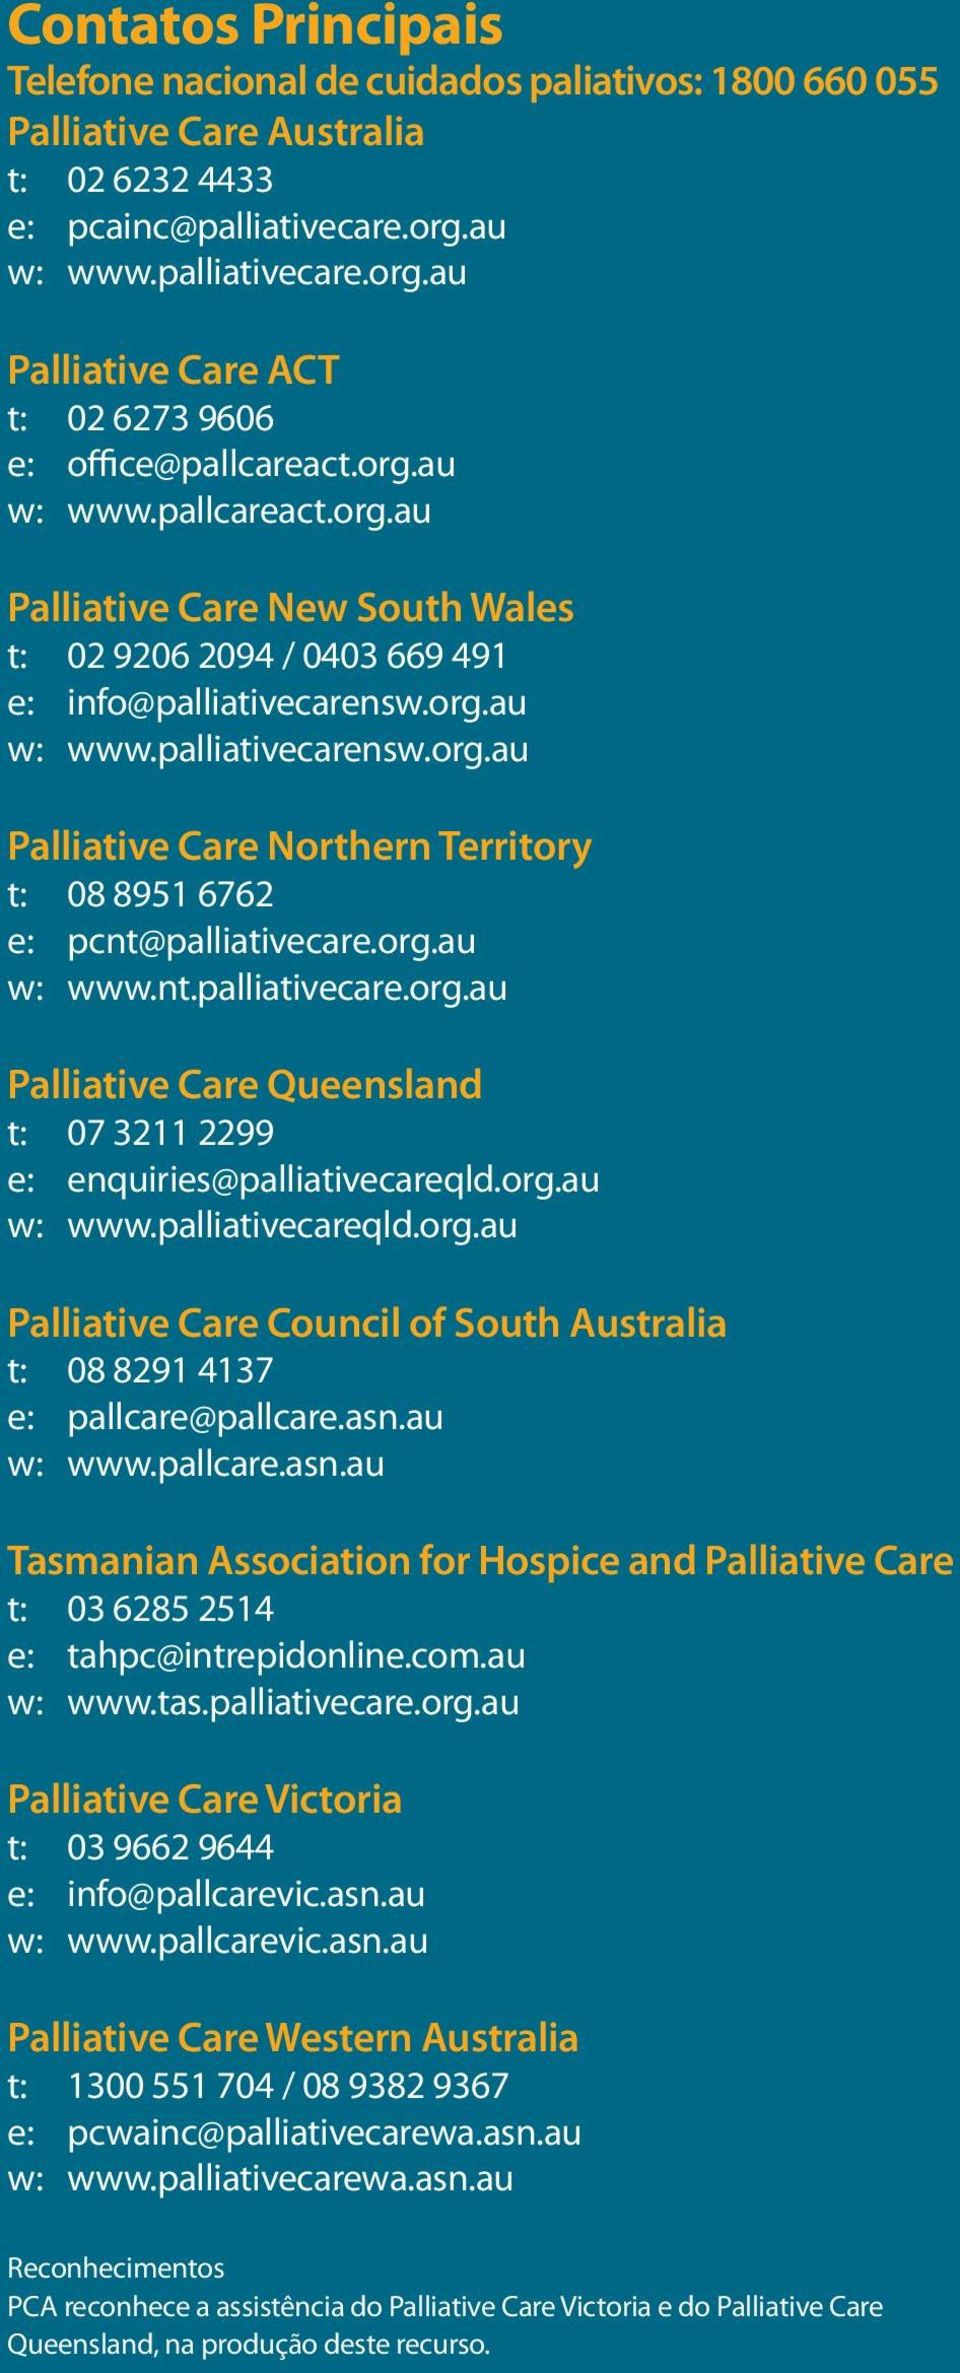 org.au w: www.palliativecarensw.org.au Palliative Care Northern Territory t: 08 8951 6762 e: pcnt@palliativecare.org.au w: www.nt.palliativecare.org.au Palliative Care Queensland t: 07 3211 2299 e: enquiries@palliativecareqld.